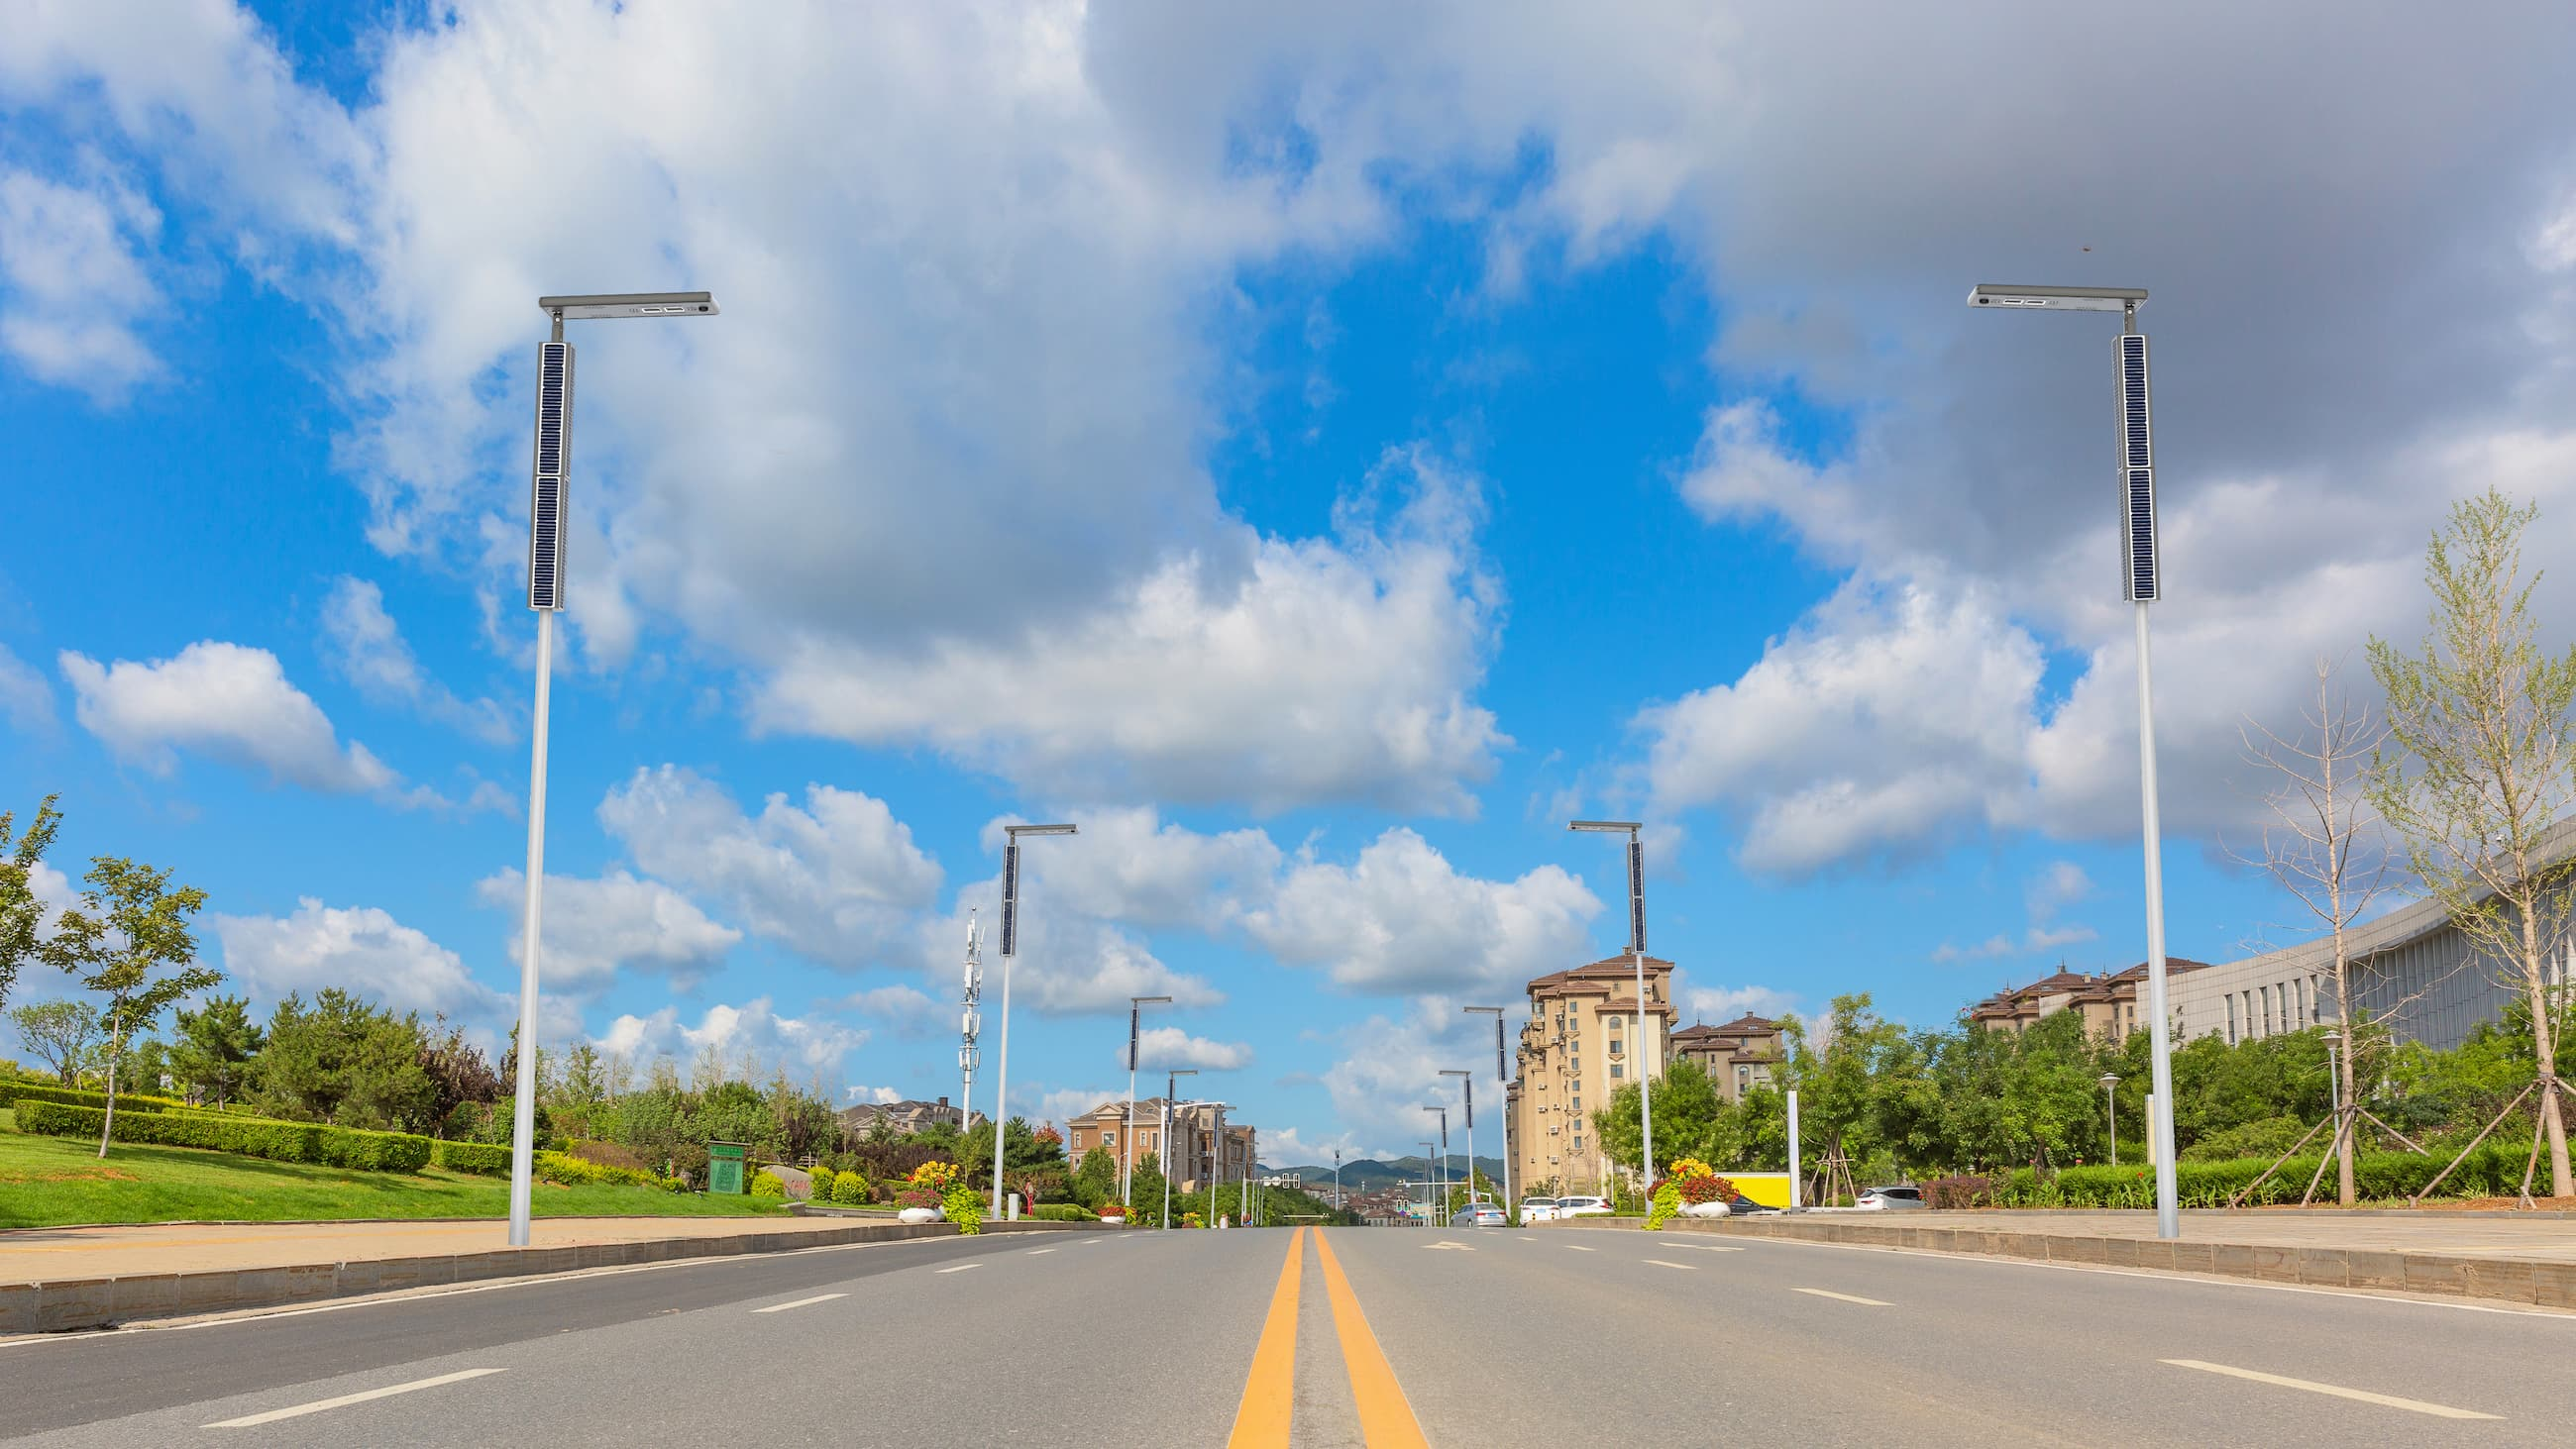 Are you wondering why are people going for the idea of solar powered street lights and what impact does it have on our environment? If so, then this may be an article that will interest you.